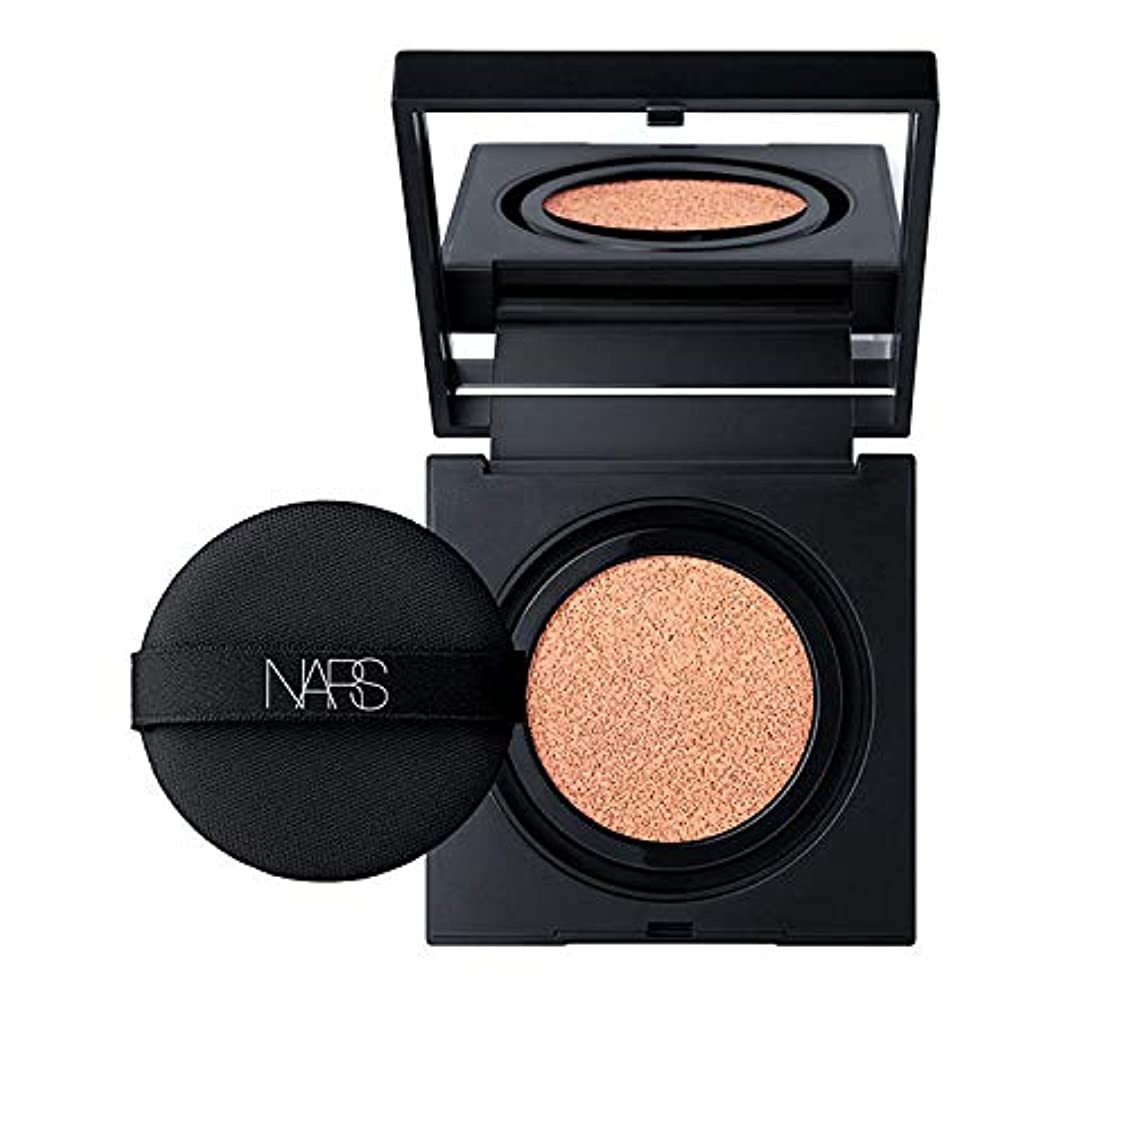 密明確に分岐するNars(ナーズ) Natural Radiant Longwear Cushion Foundation 12g # Seoul